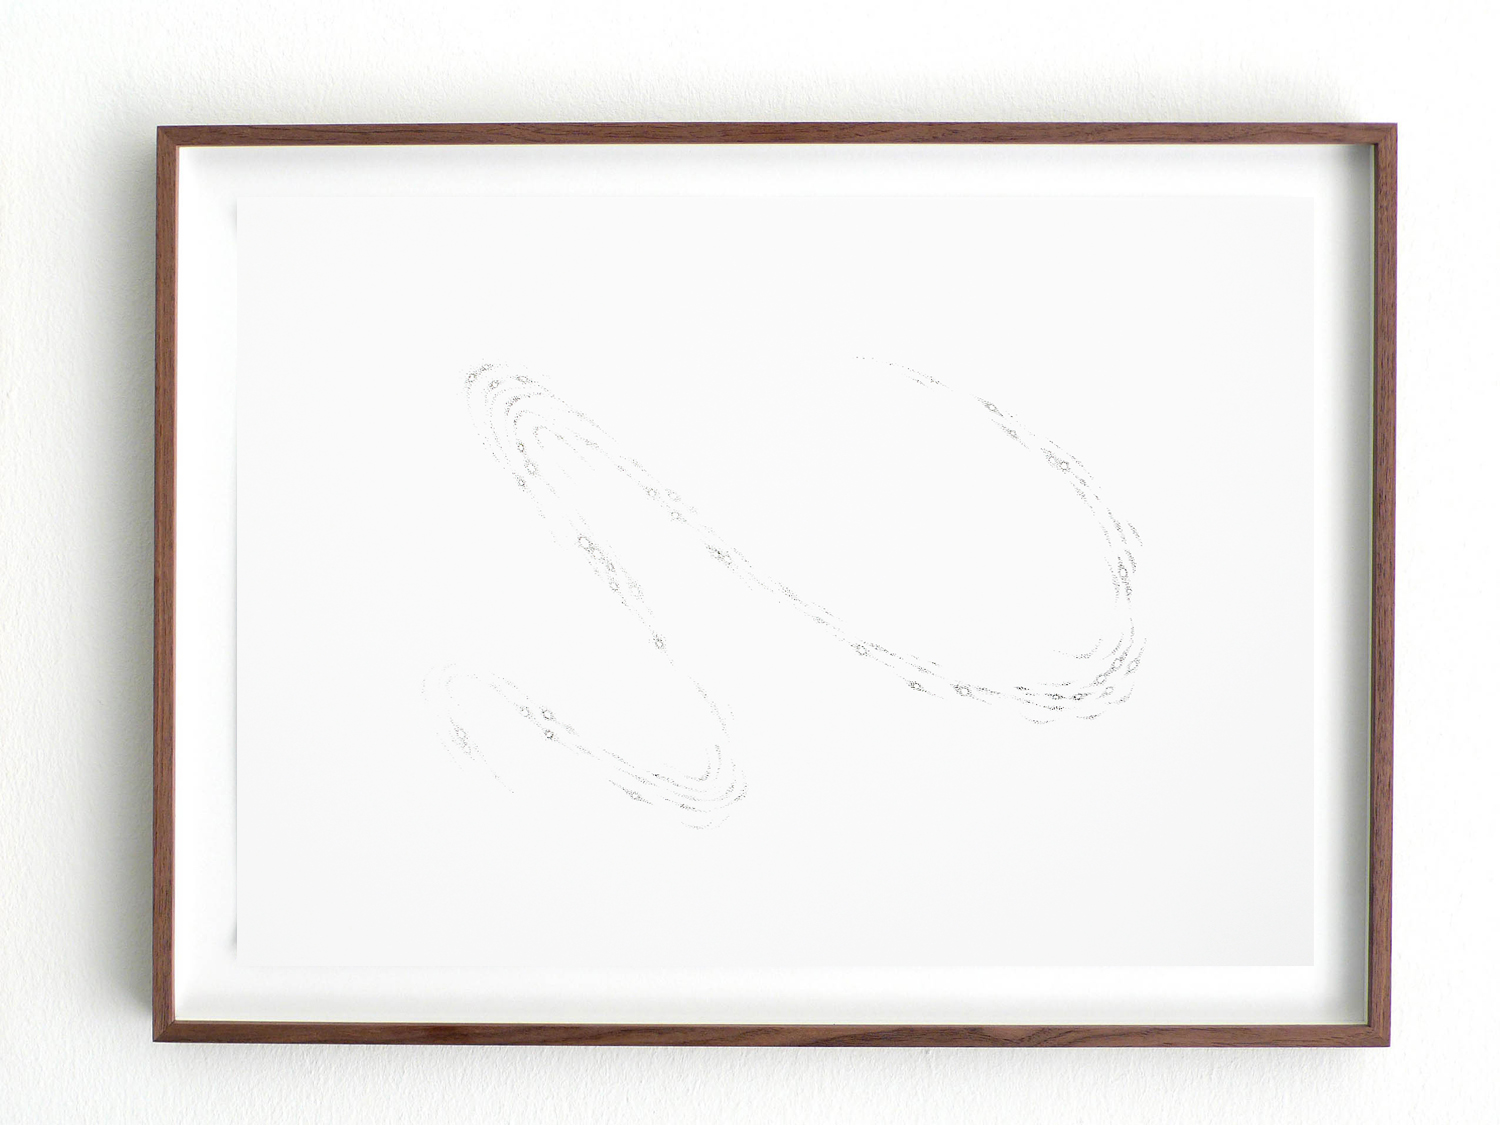 Vision/ compa, 2008, pencil on paper, 29,7 x 42cm